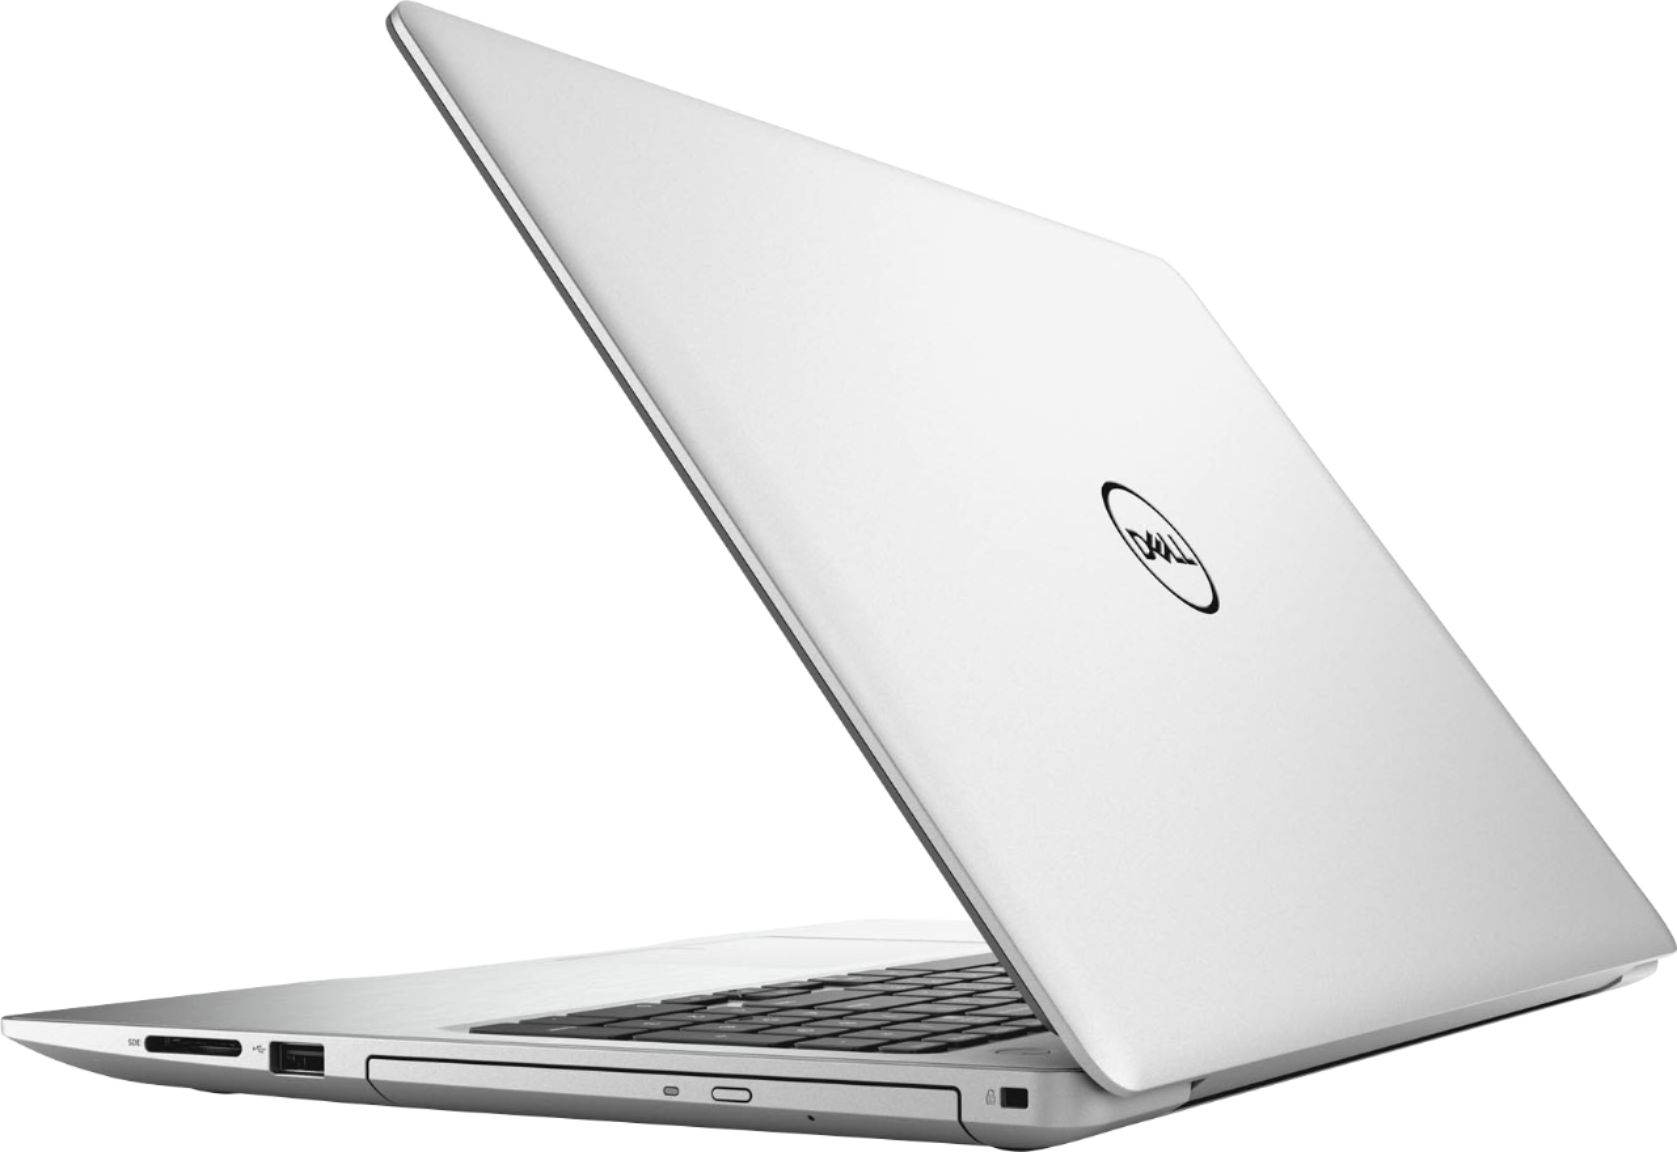 """Alt View Zoom 1. Dell - Geek Squad Certified Refurbished Inspiron 15.6"""" Touch-Screen Laptop - Intel Core i7 - 12GB Memory - 256GB SSD - Silver."""